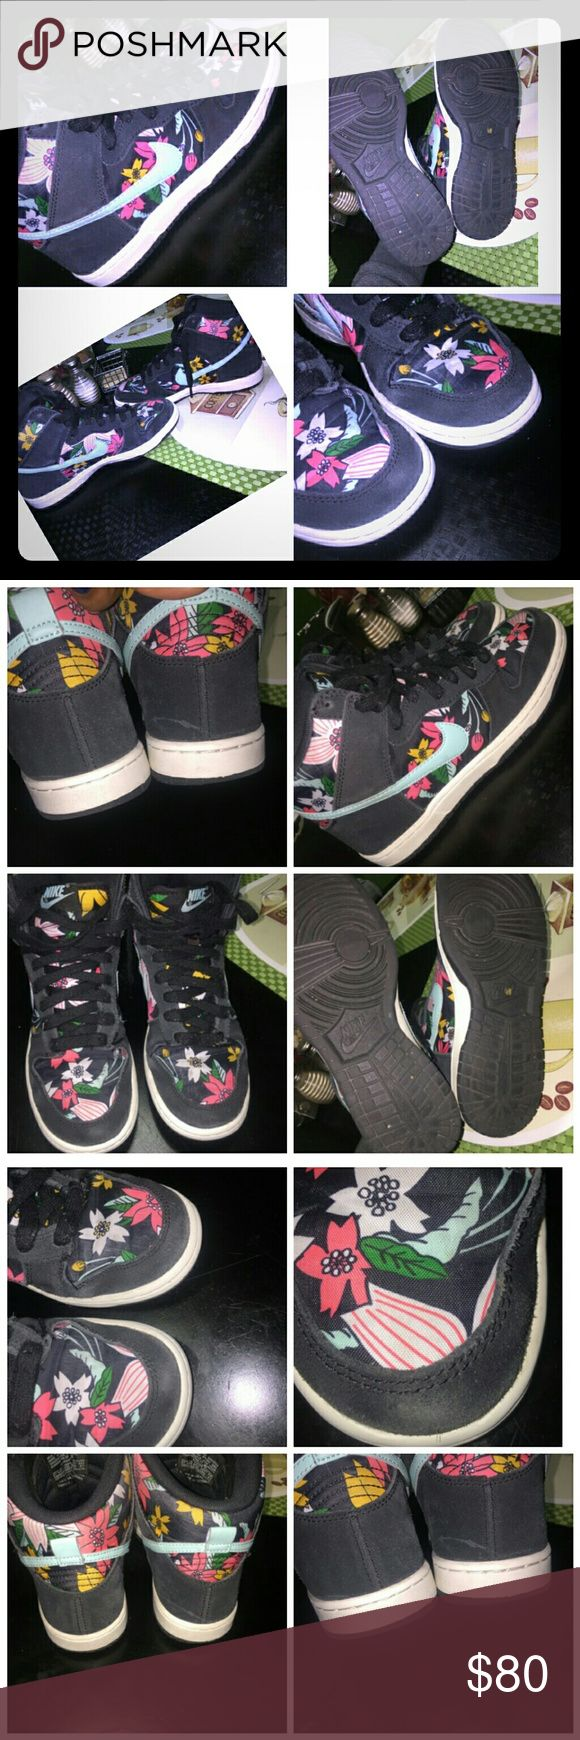 worn floral nike sneakers worn floral nike sneakers size 6 super cool and comfortable